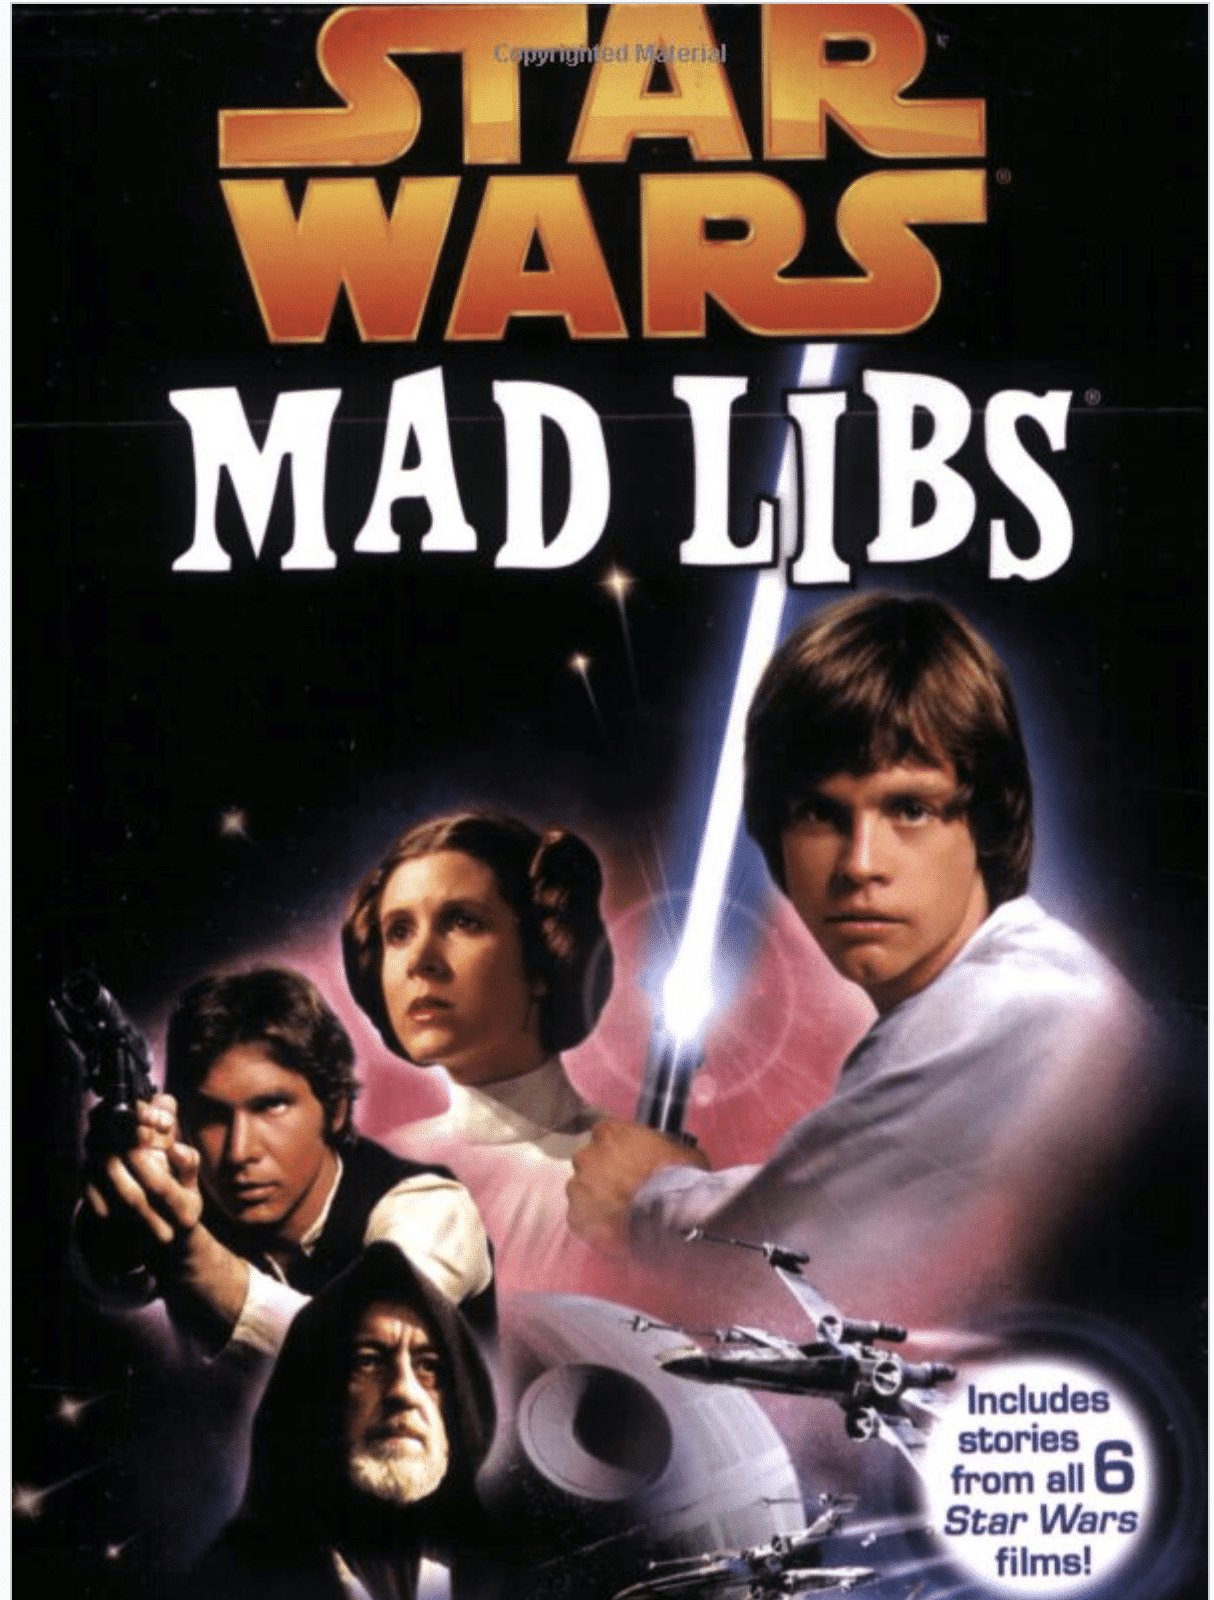 Star Wars Mad Libs are fun for kids or adults